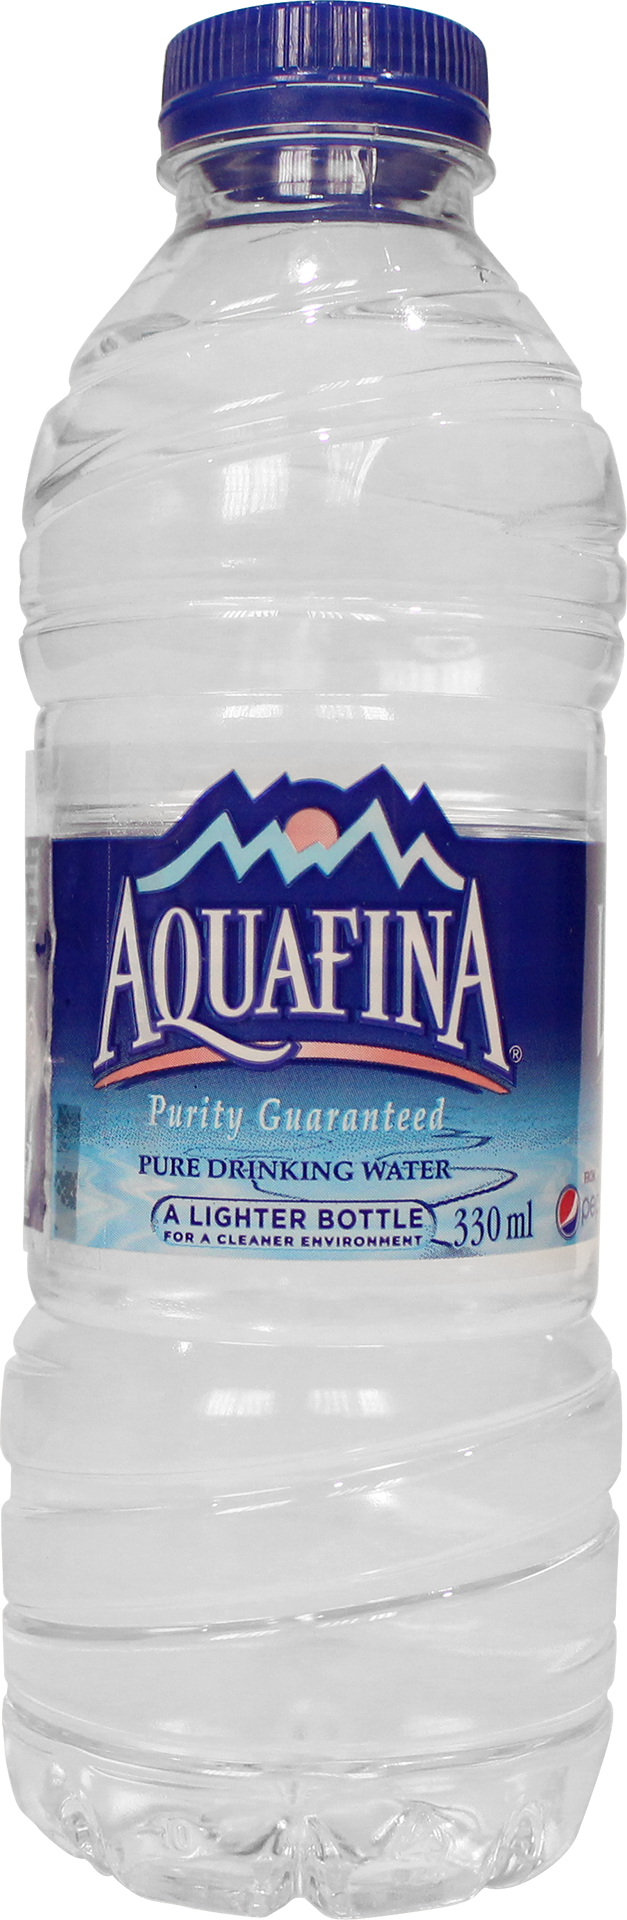 Aquafina 330 ml